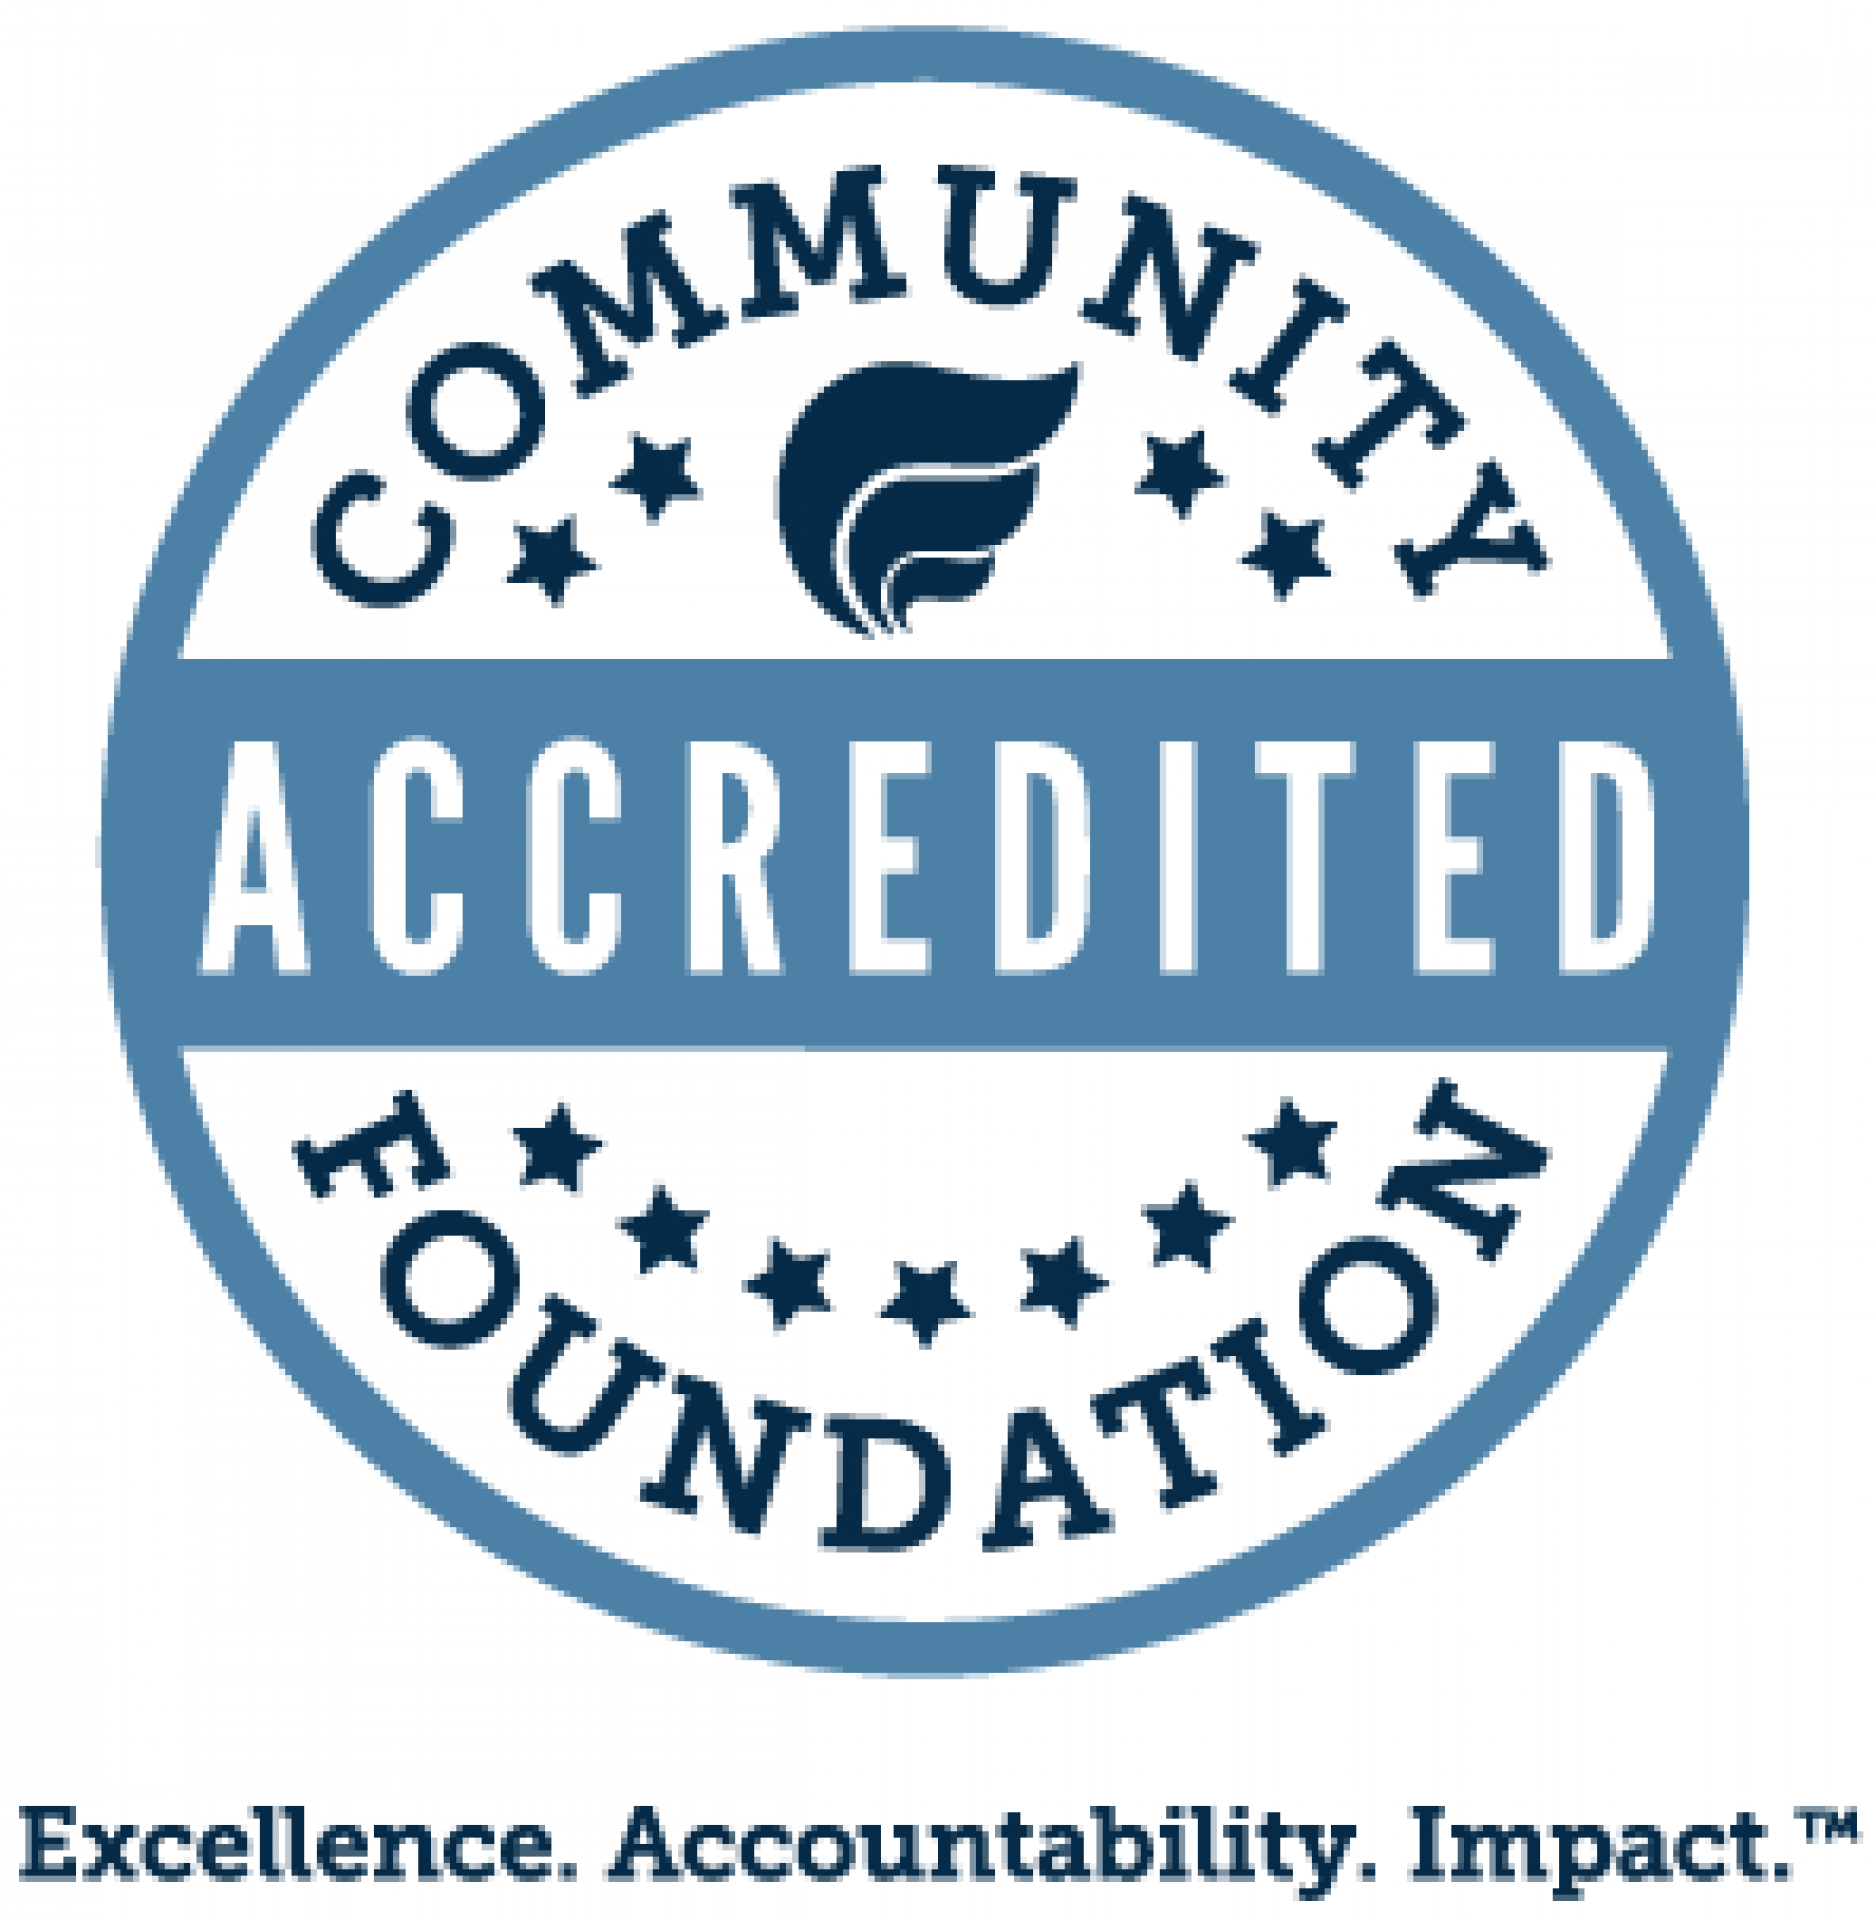 Accreditation seal for the Community Foundation of Sarasota County